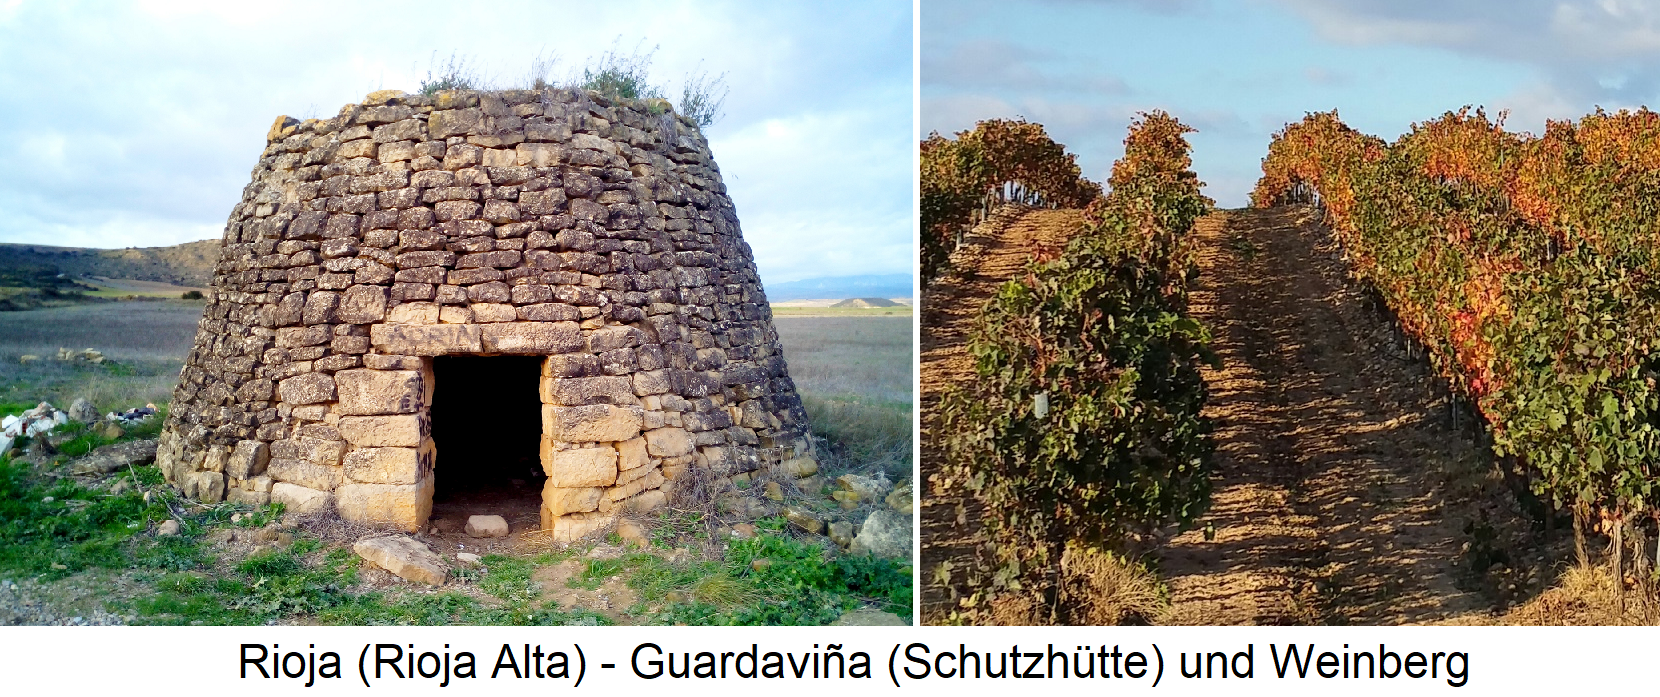 Rioja (Rioja Alta) - Guardaviña (refuge) and vineyard